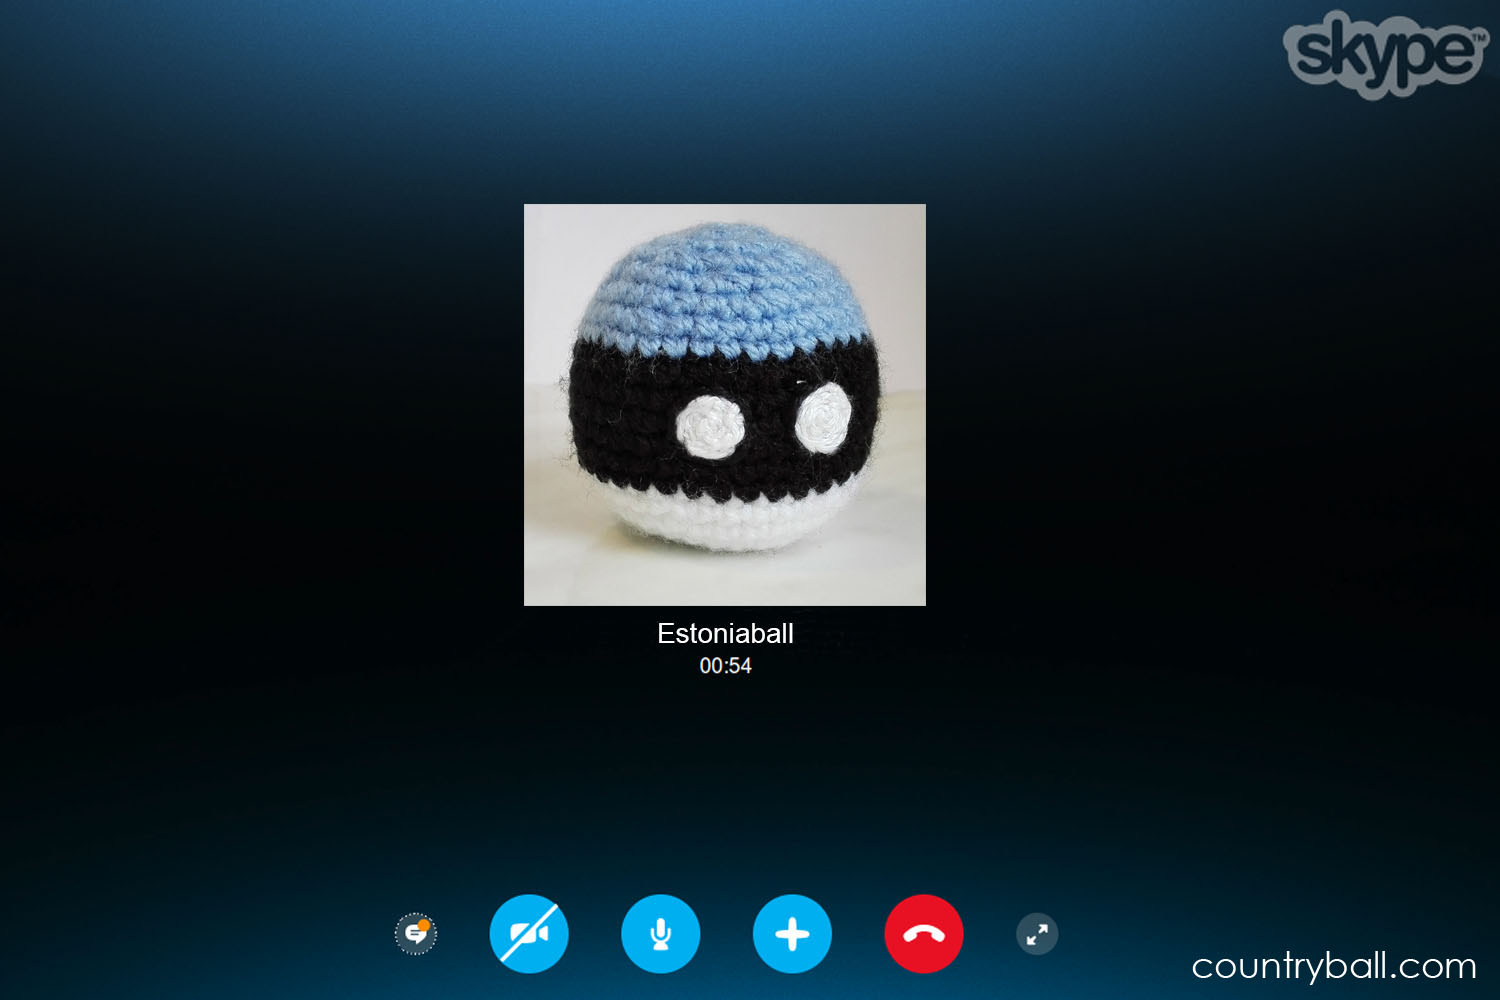 Estoniaball having a Conversation on Skype